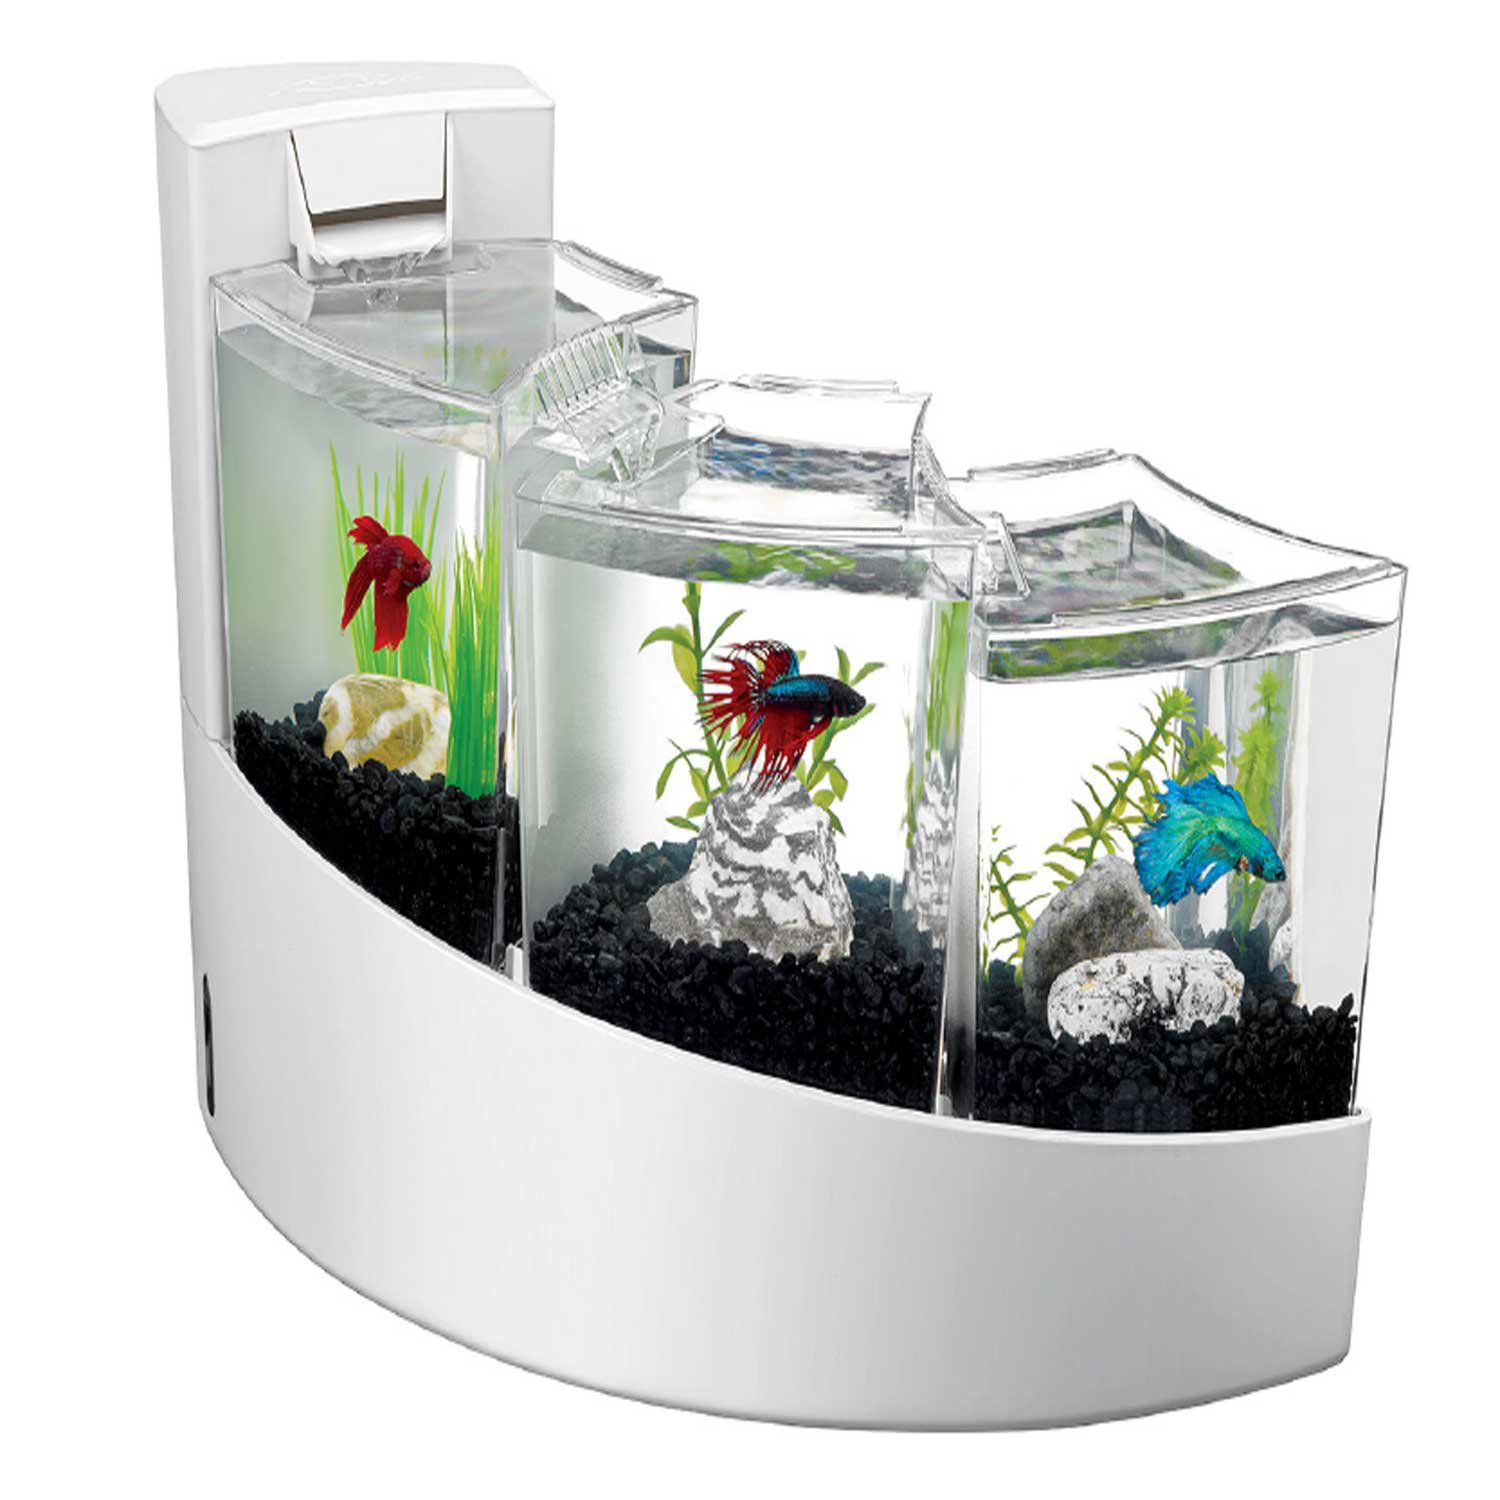 Aqueon betta falls aquarium kit in white fish aquariums for Betta fish tanks petco